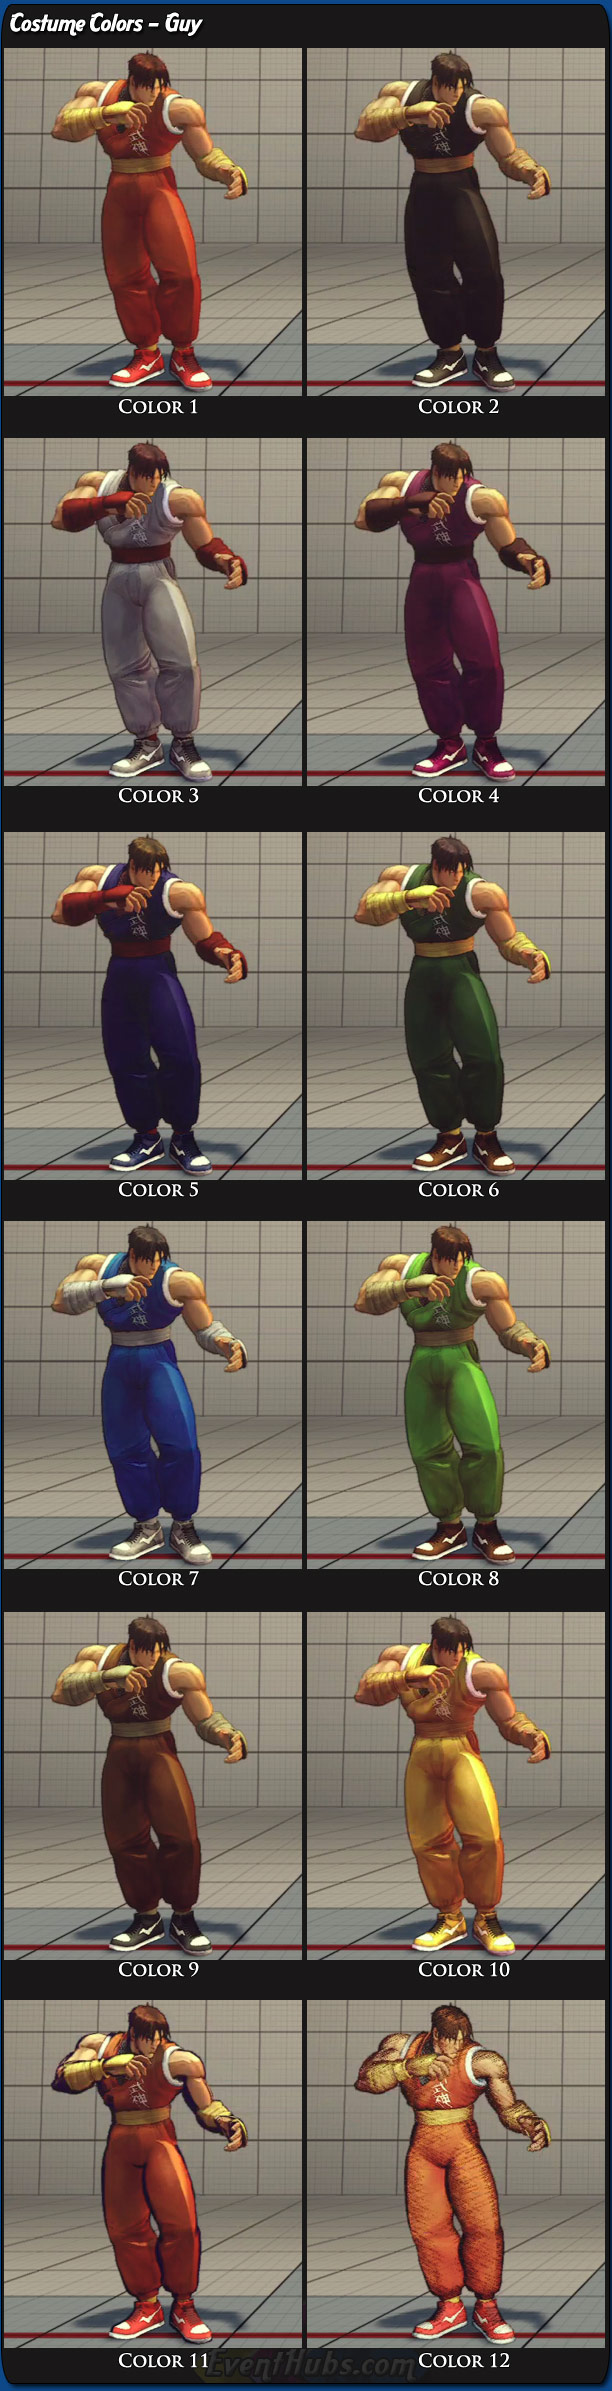 Guy's main costume colors for Super Street Fighter 4